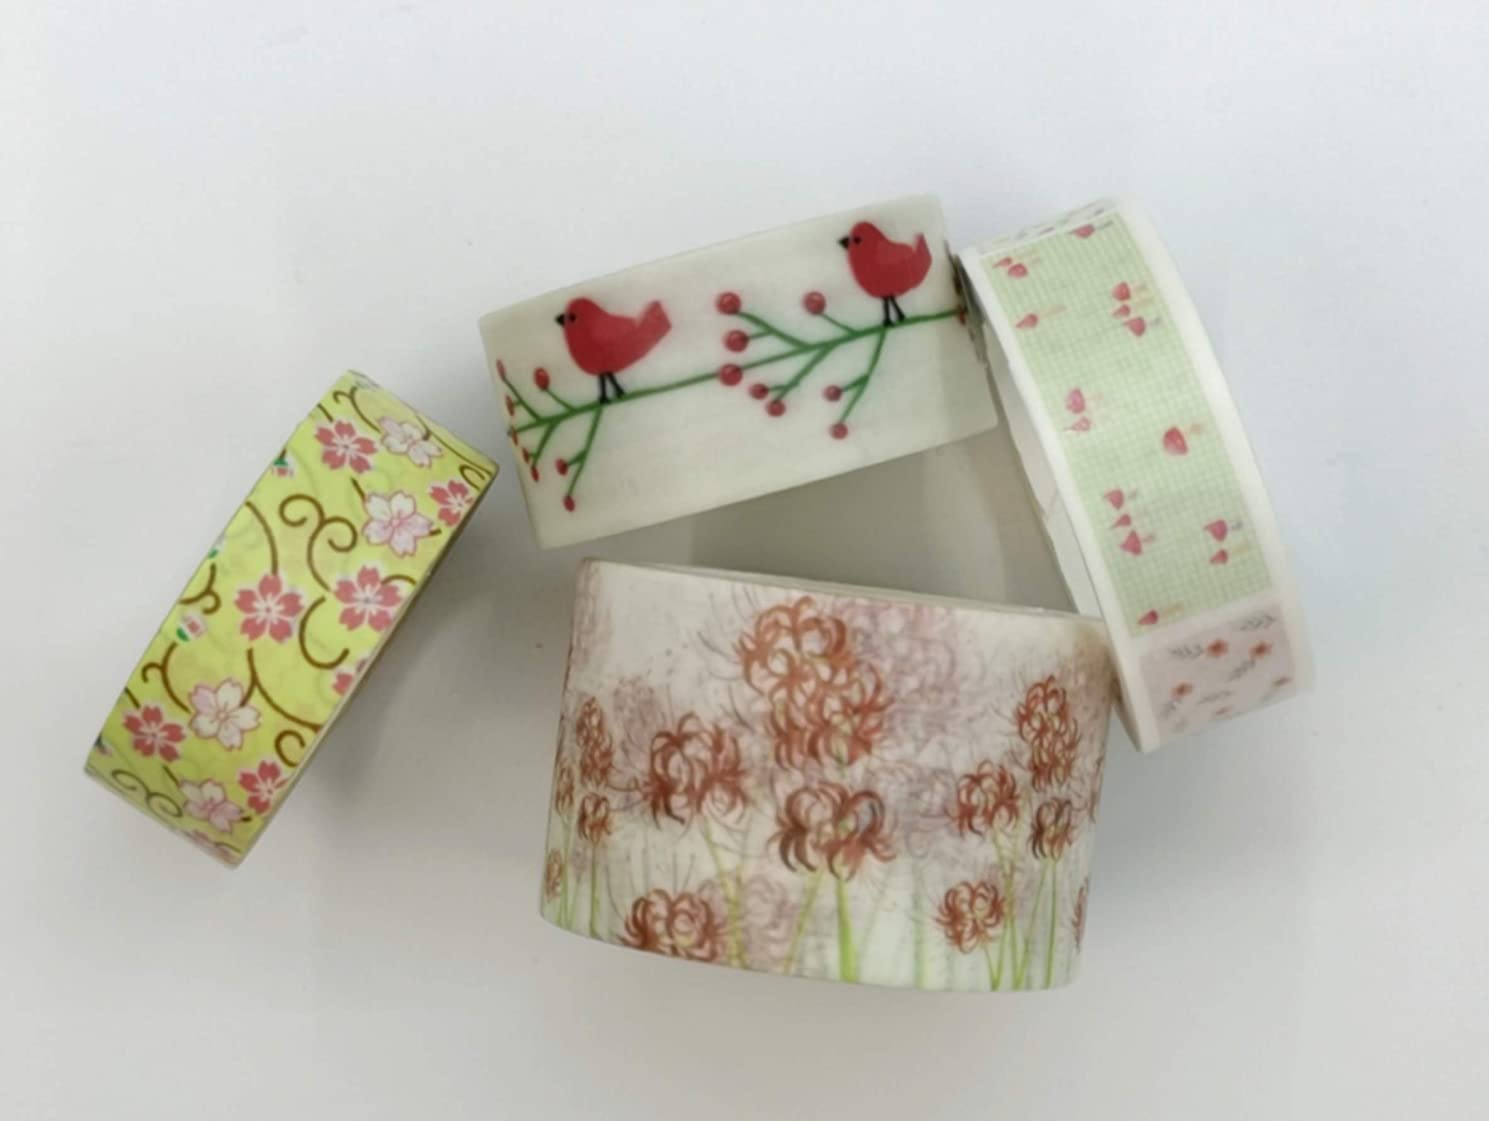 Summer Floral and Birds Print washi Tape Set of 4 Rolls